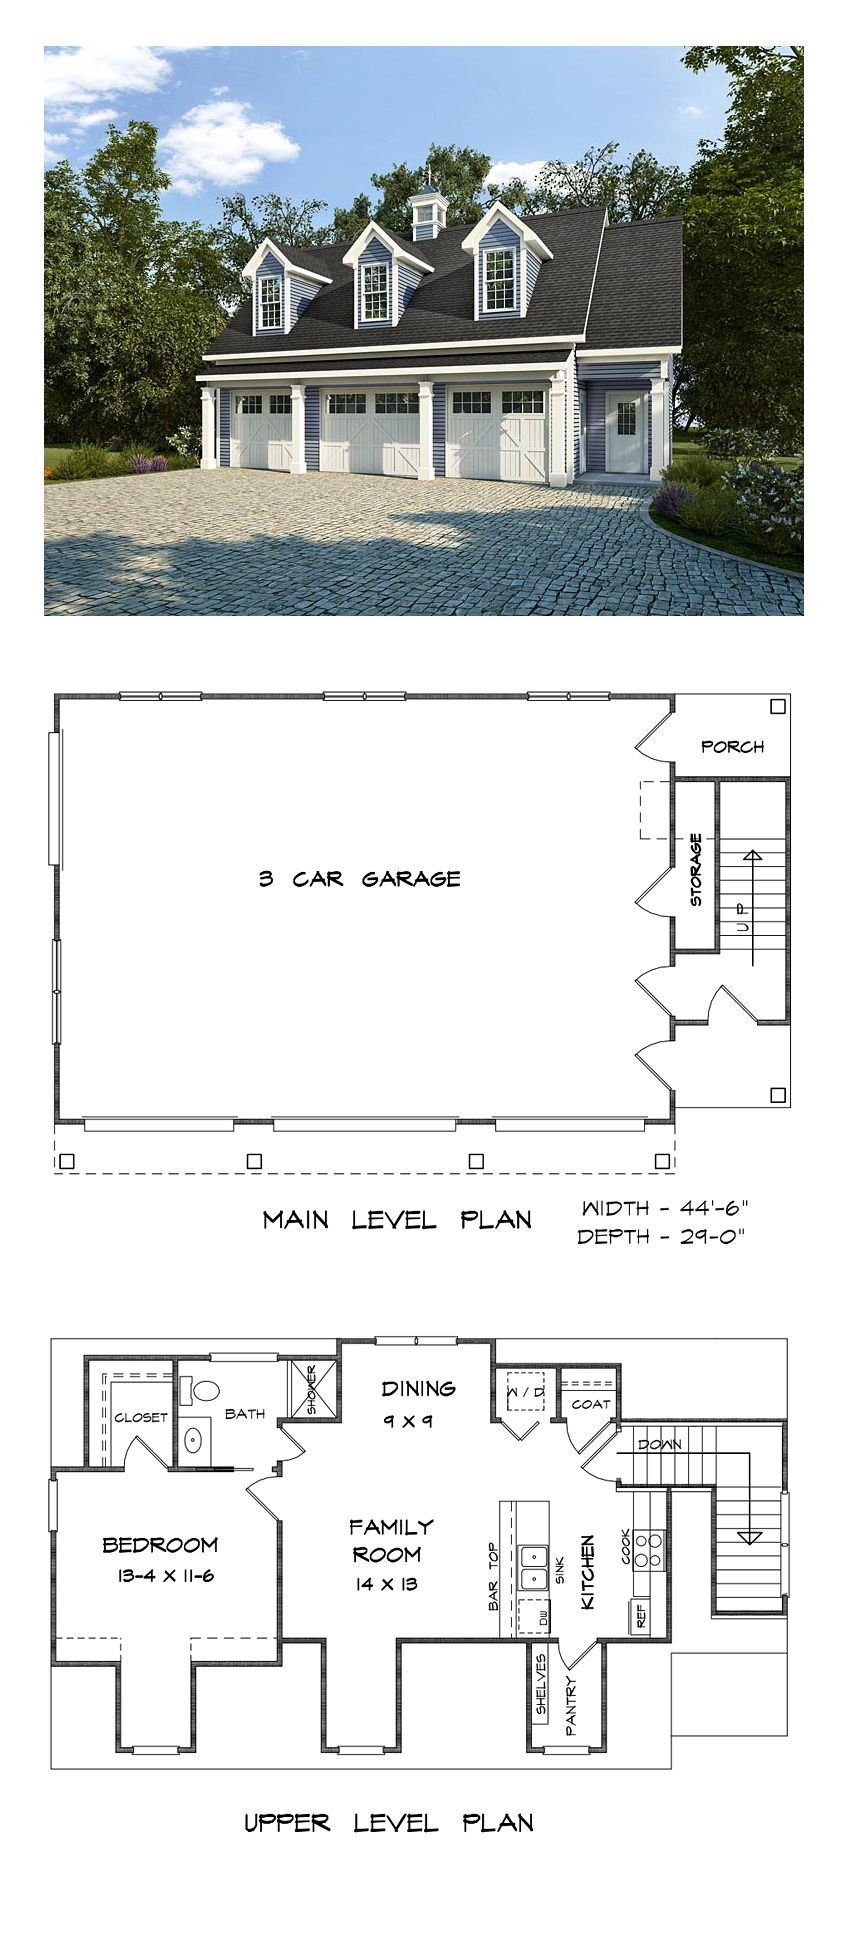 Garage Apartment Example Garage Apartment Plan 58248 Total Living Area 1812 Sq Ft 1